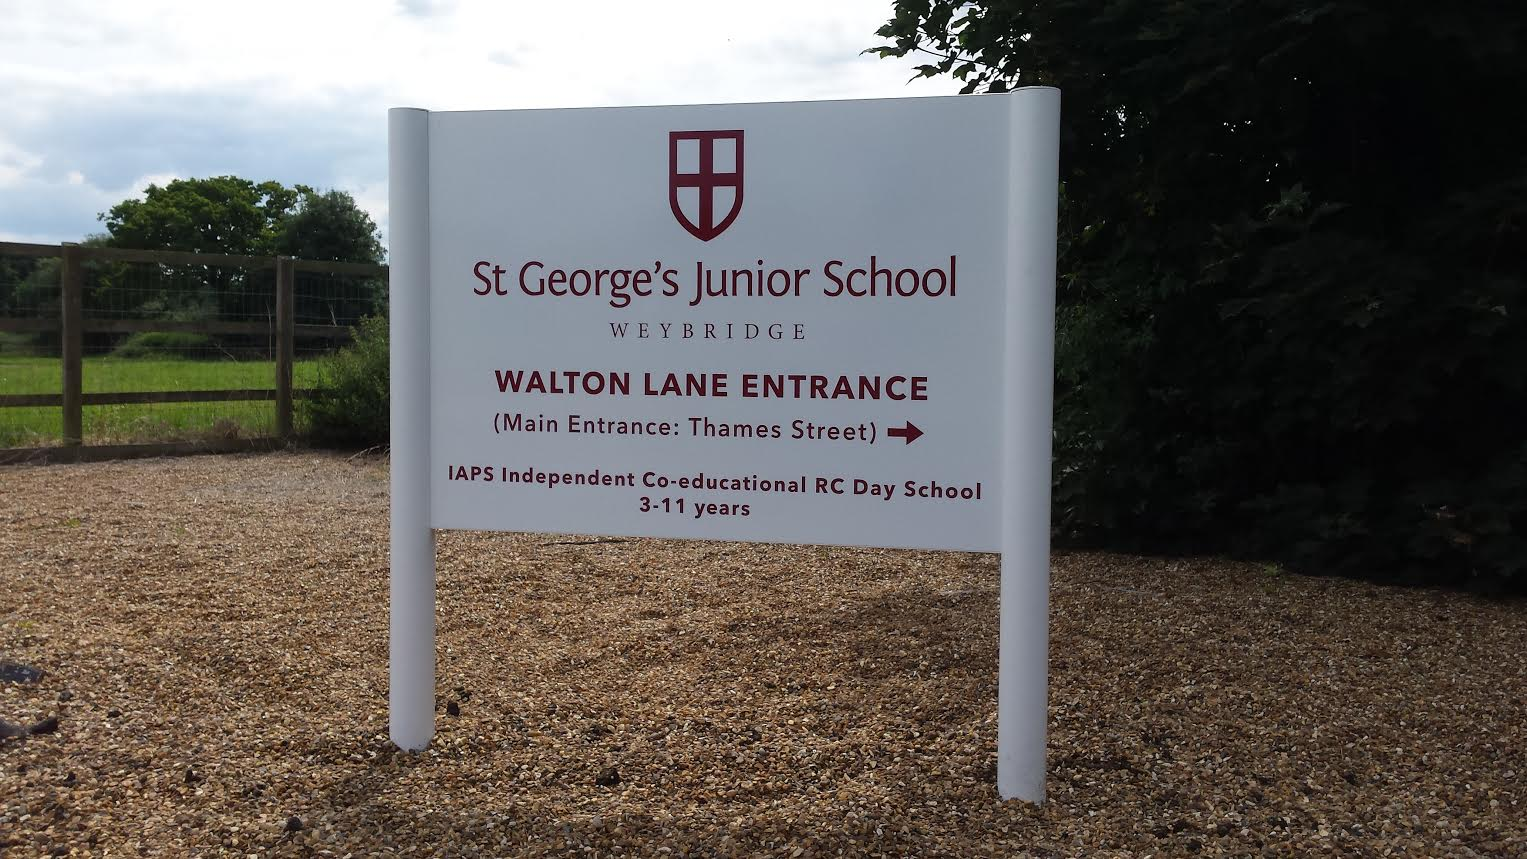 External sign at St George's Junior School